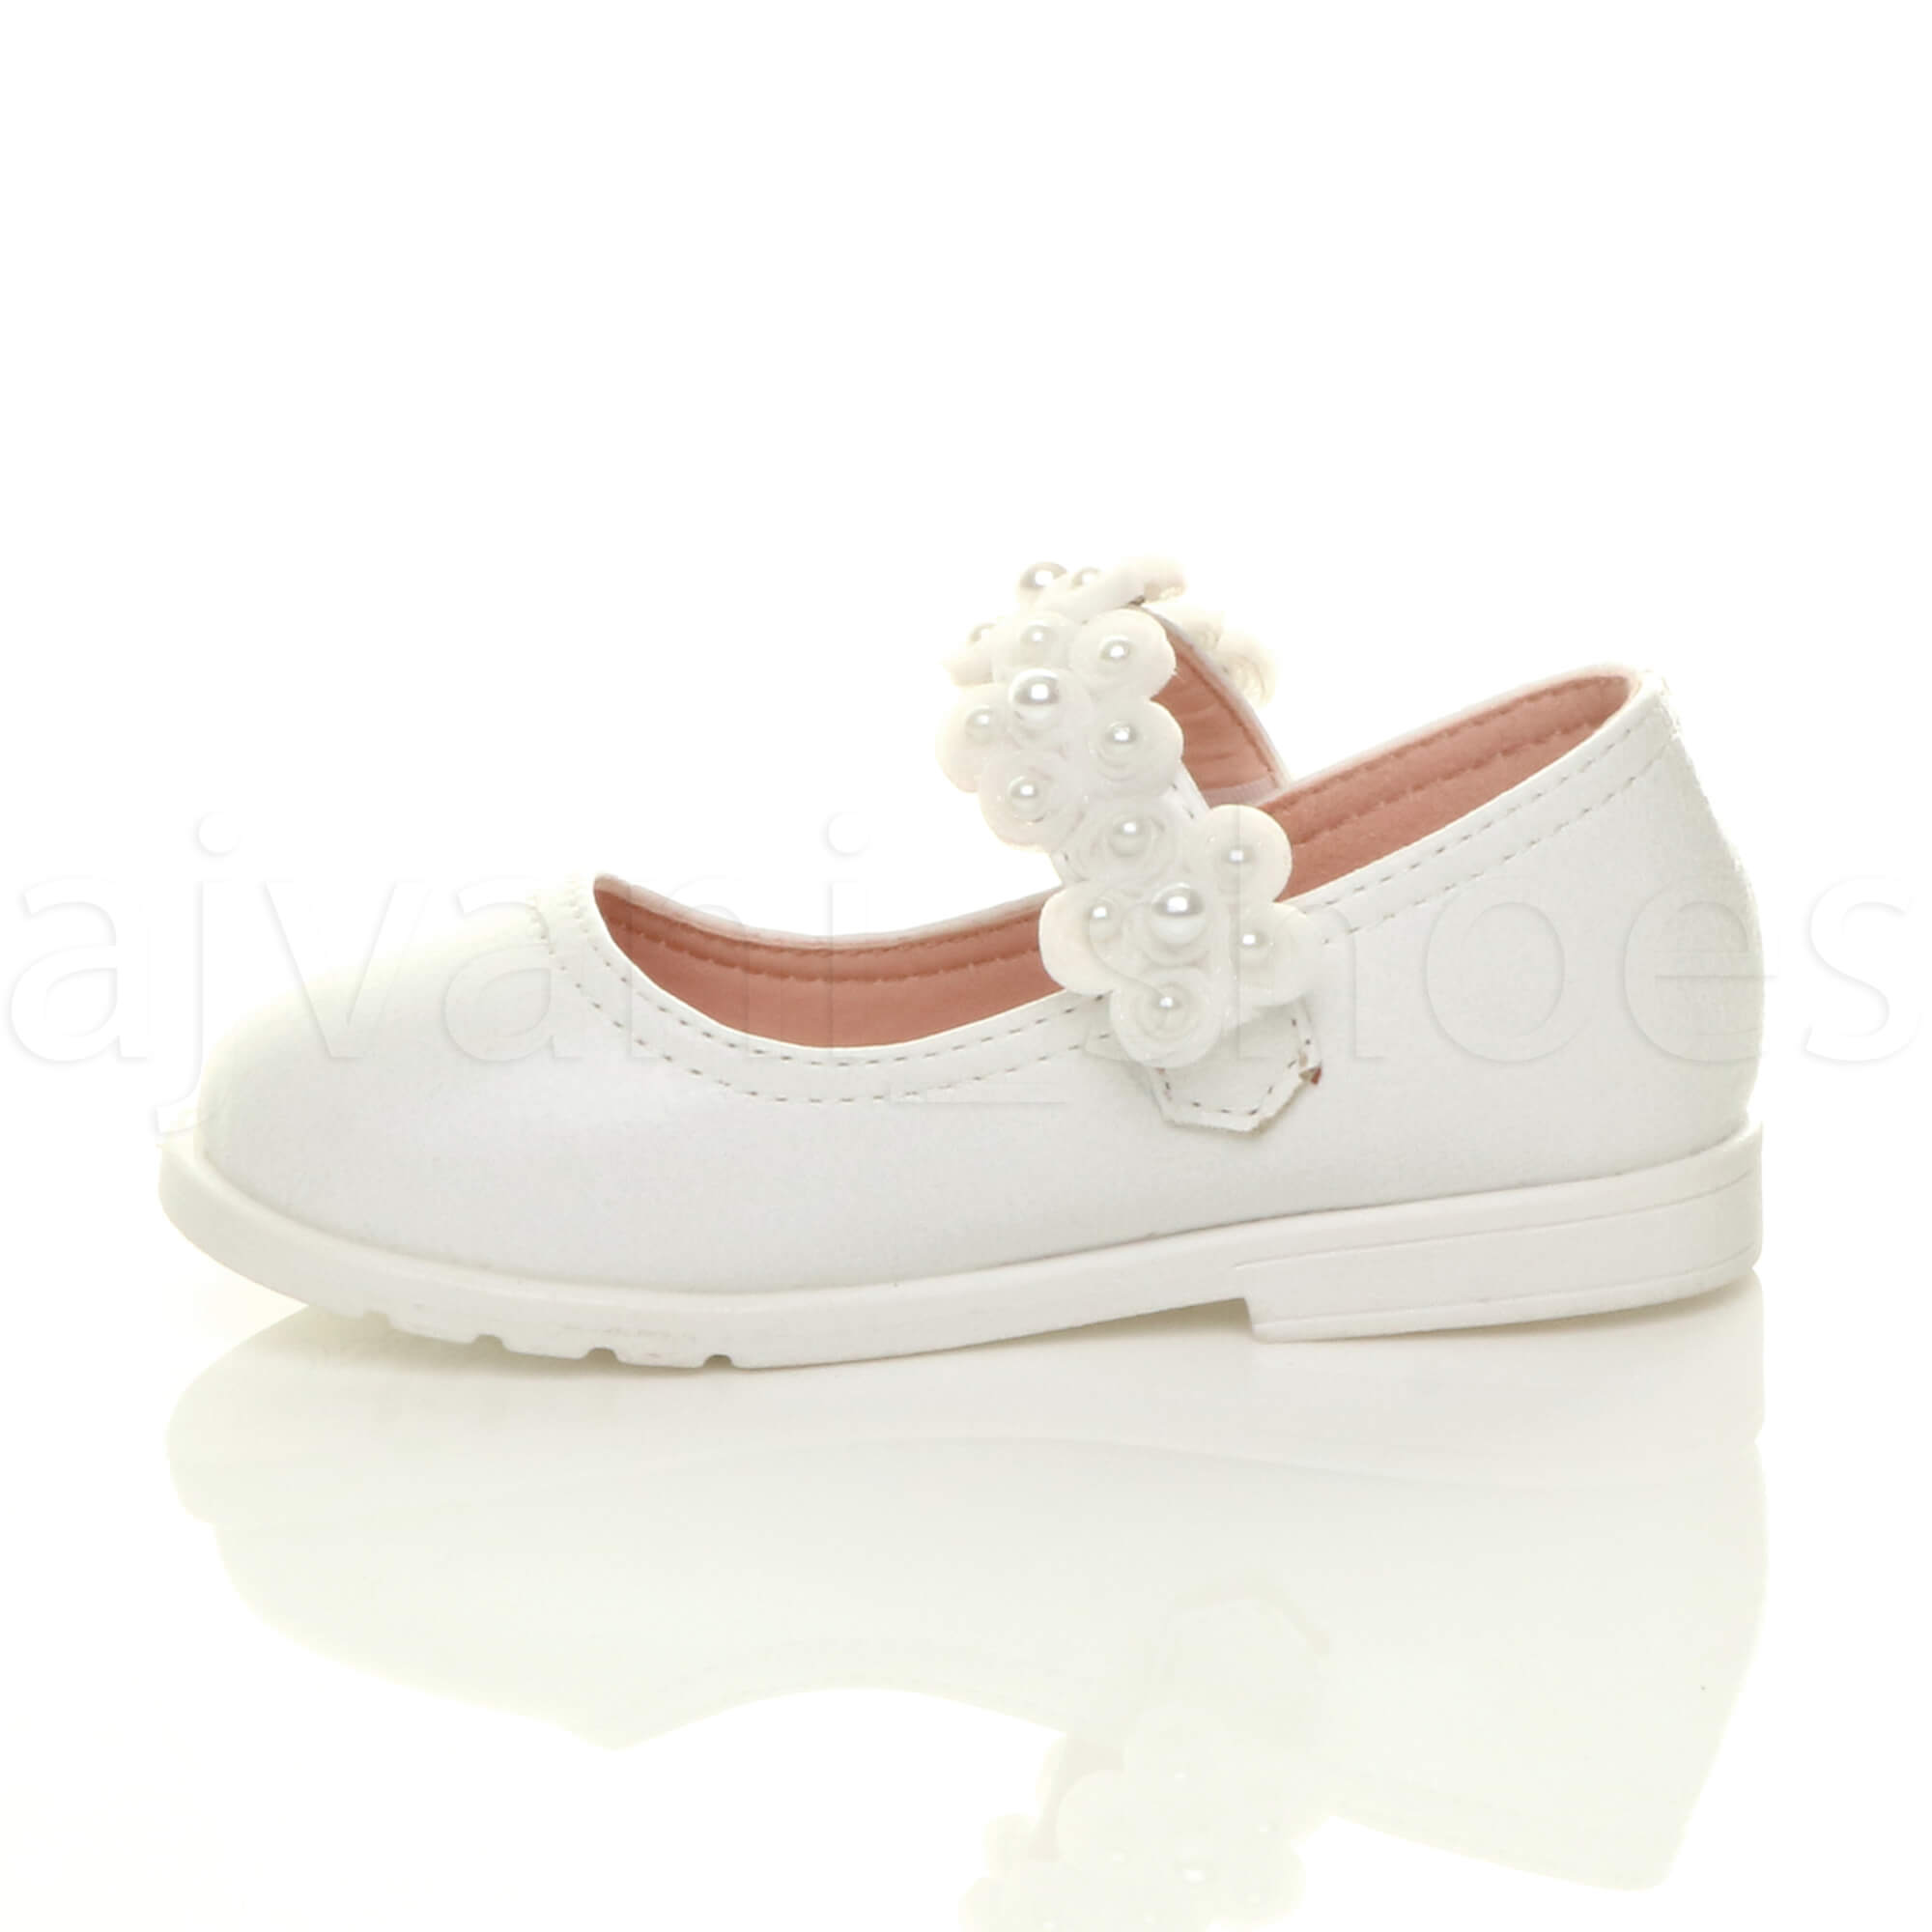 GIRLS-KIDS-CHILDRENS-FLAT-FLOWER-MARY-JANE-STRAP-BRIDESMAID-PARTY-SHOES-SIZE